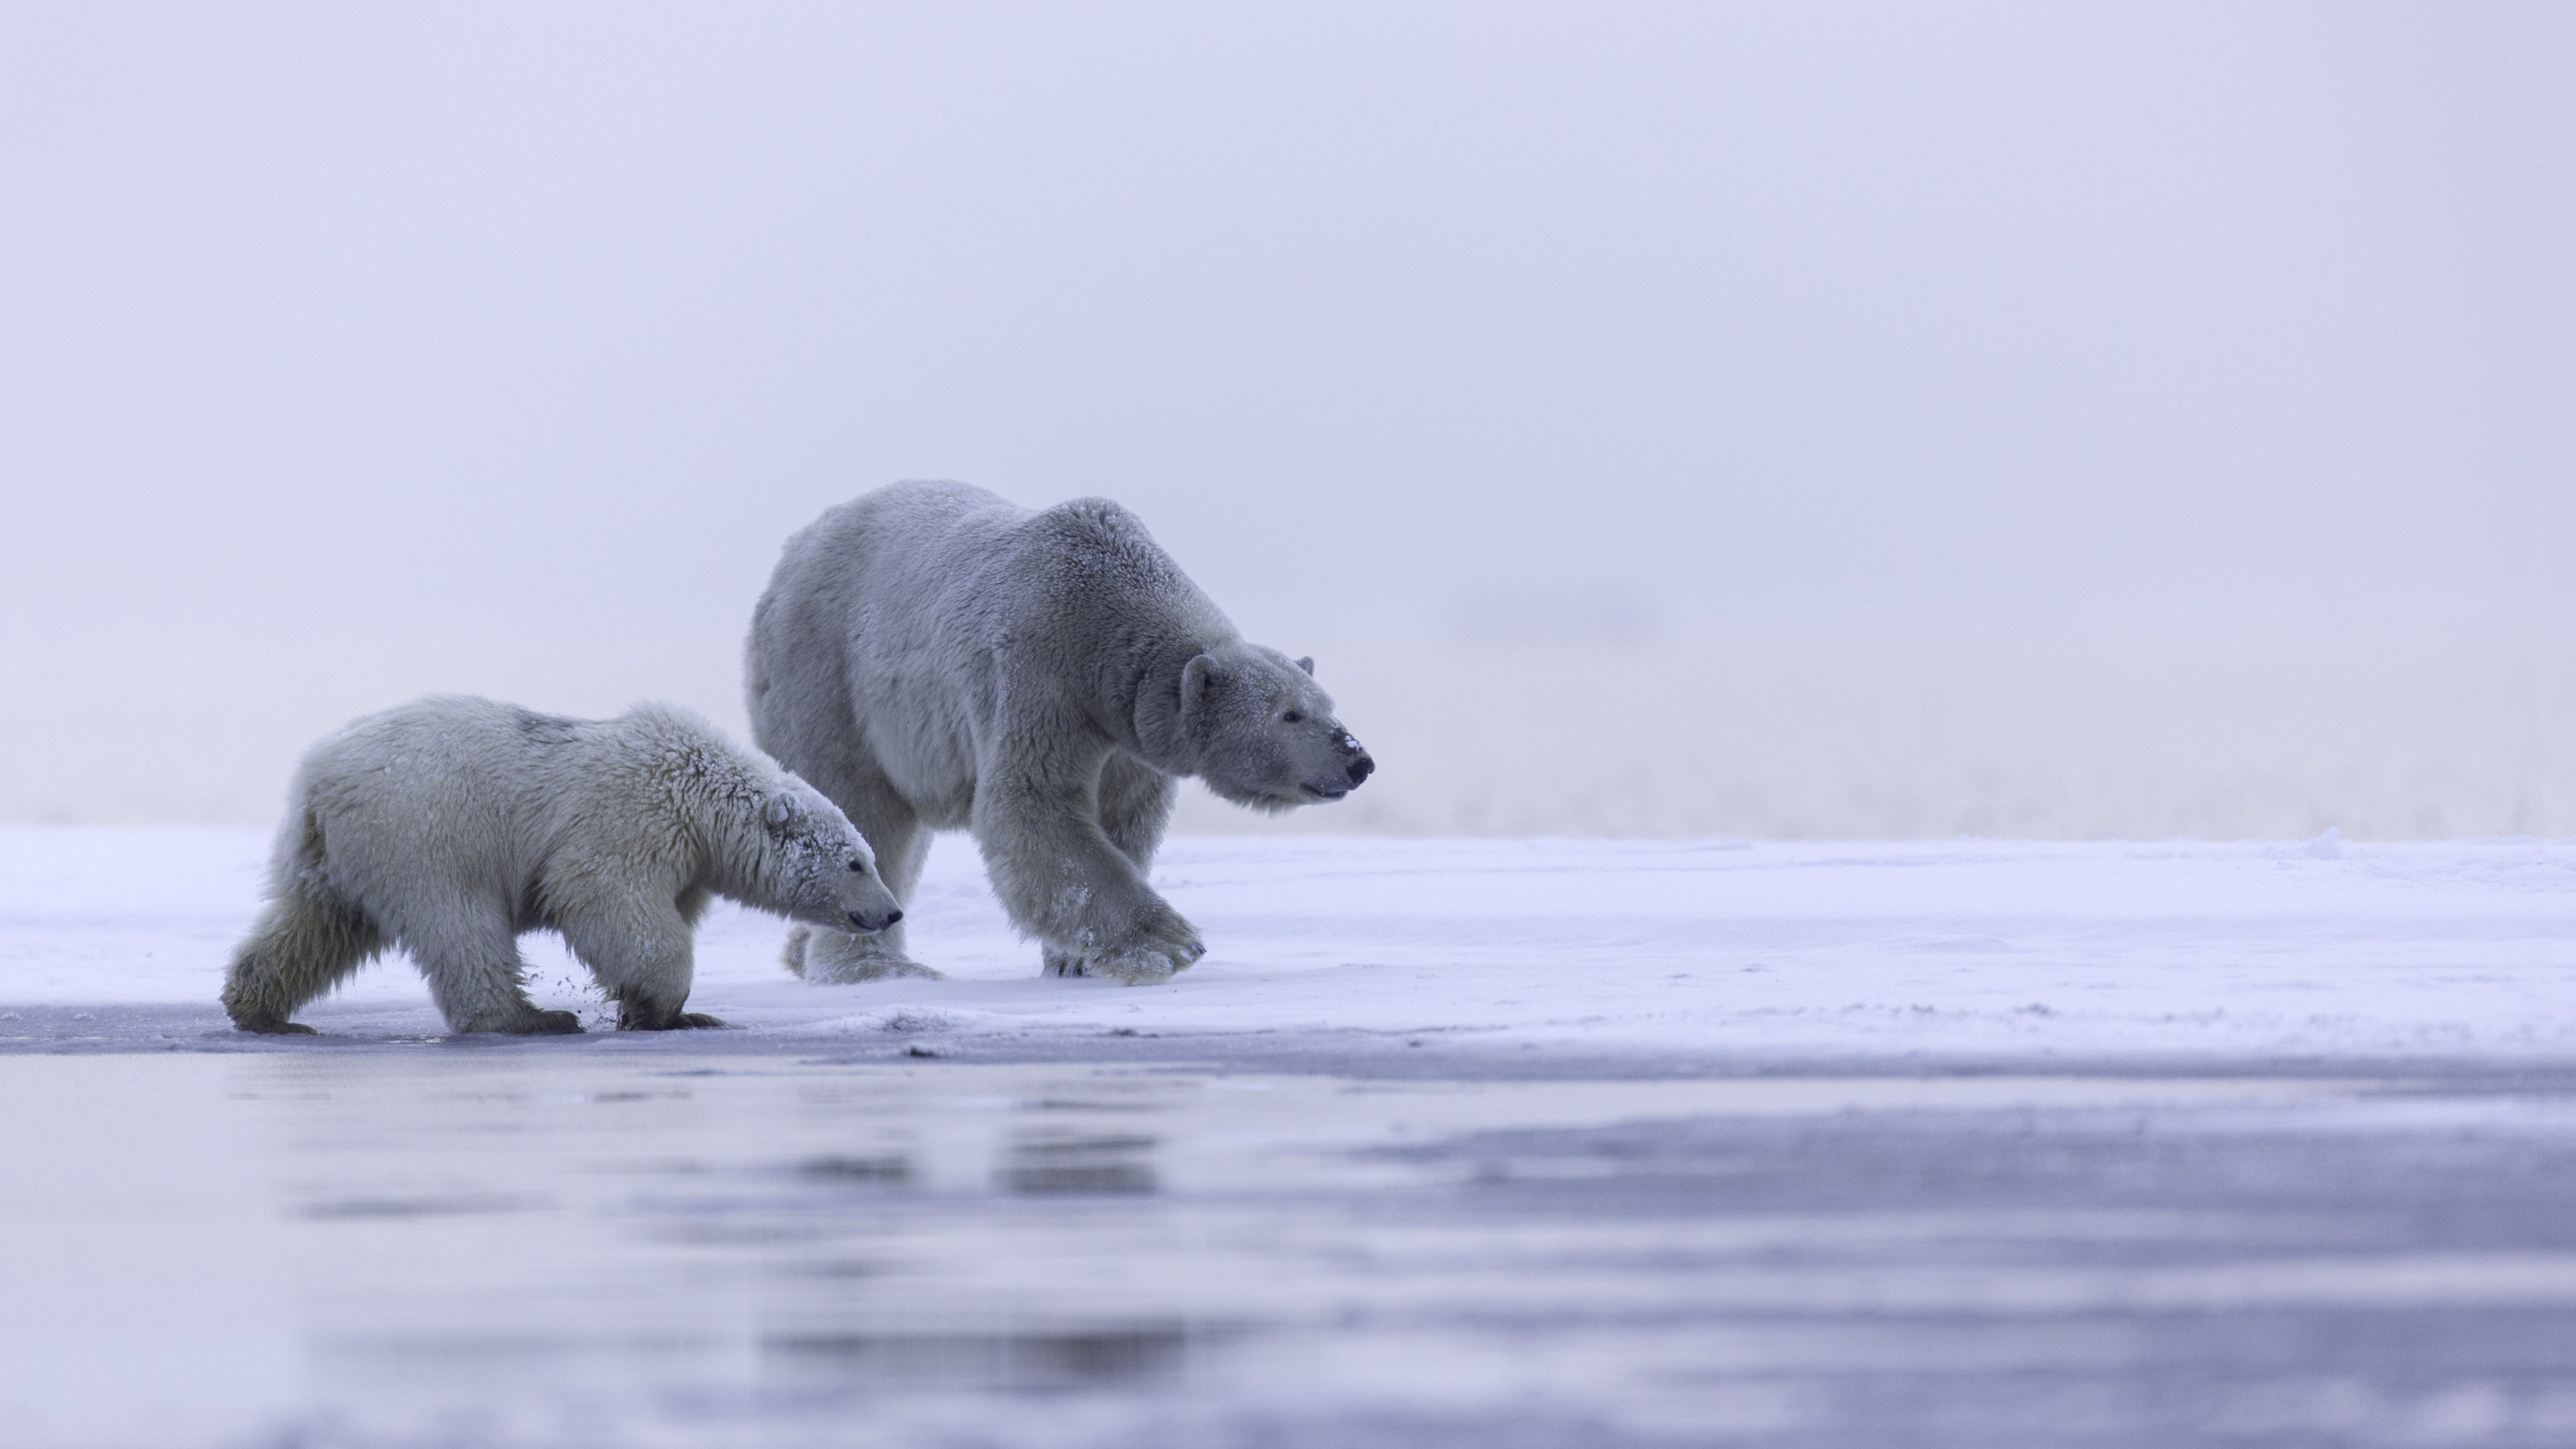 Polar bears: mother and cub wallpaper 3840x2160